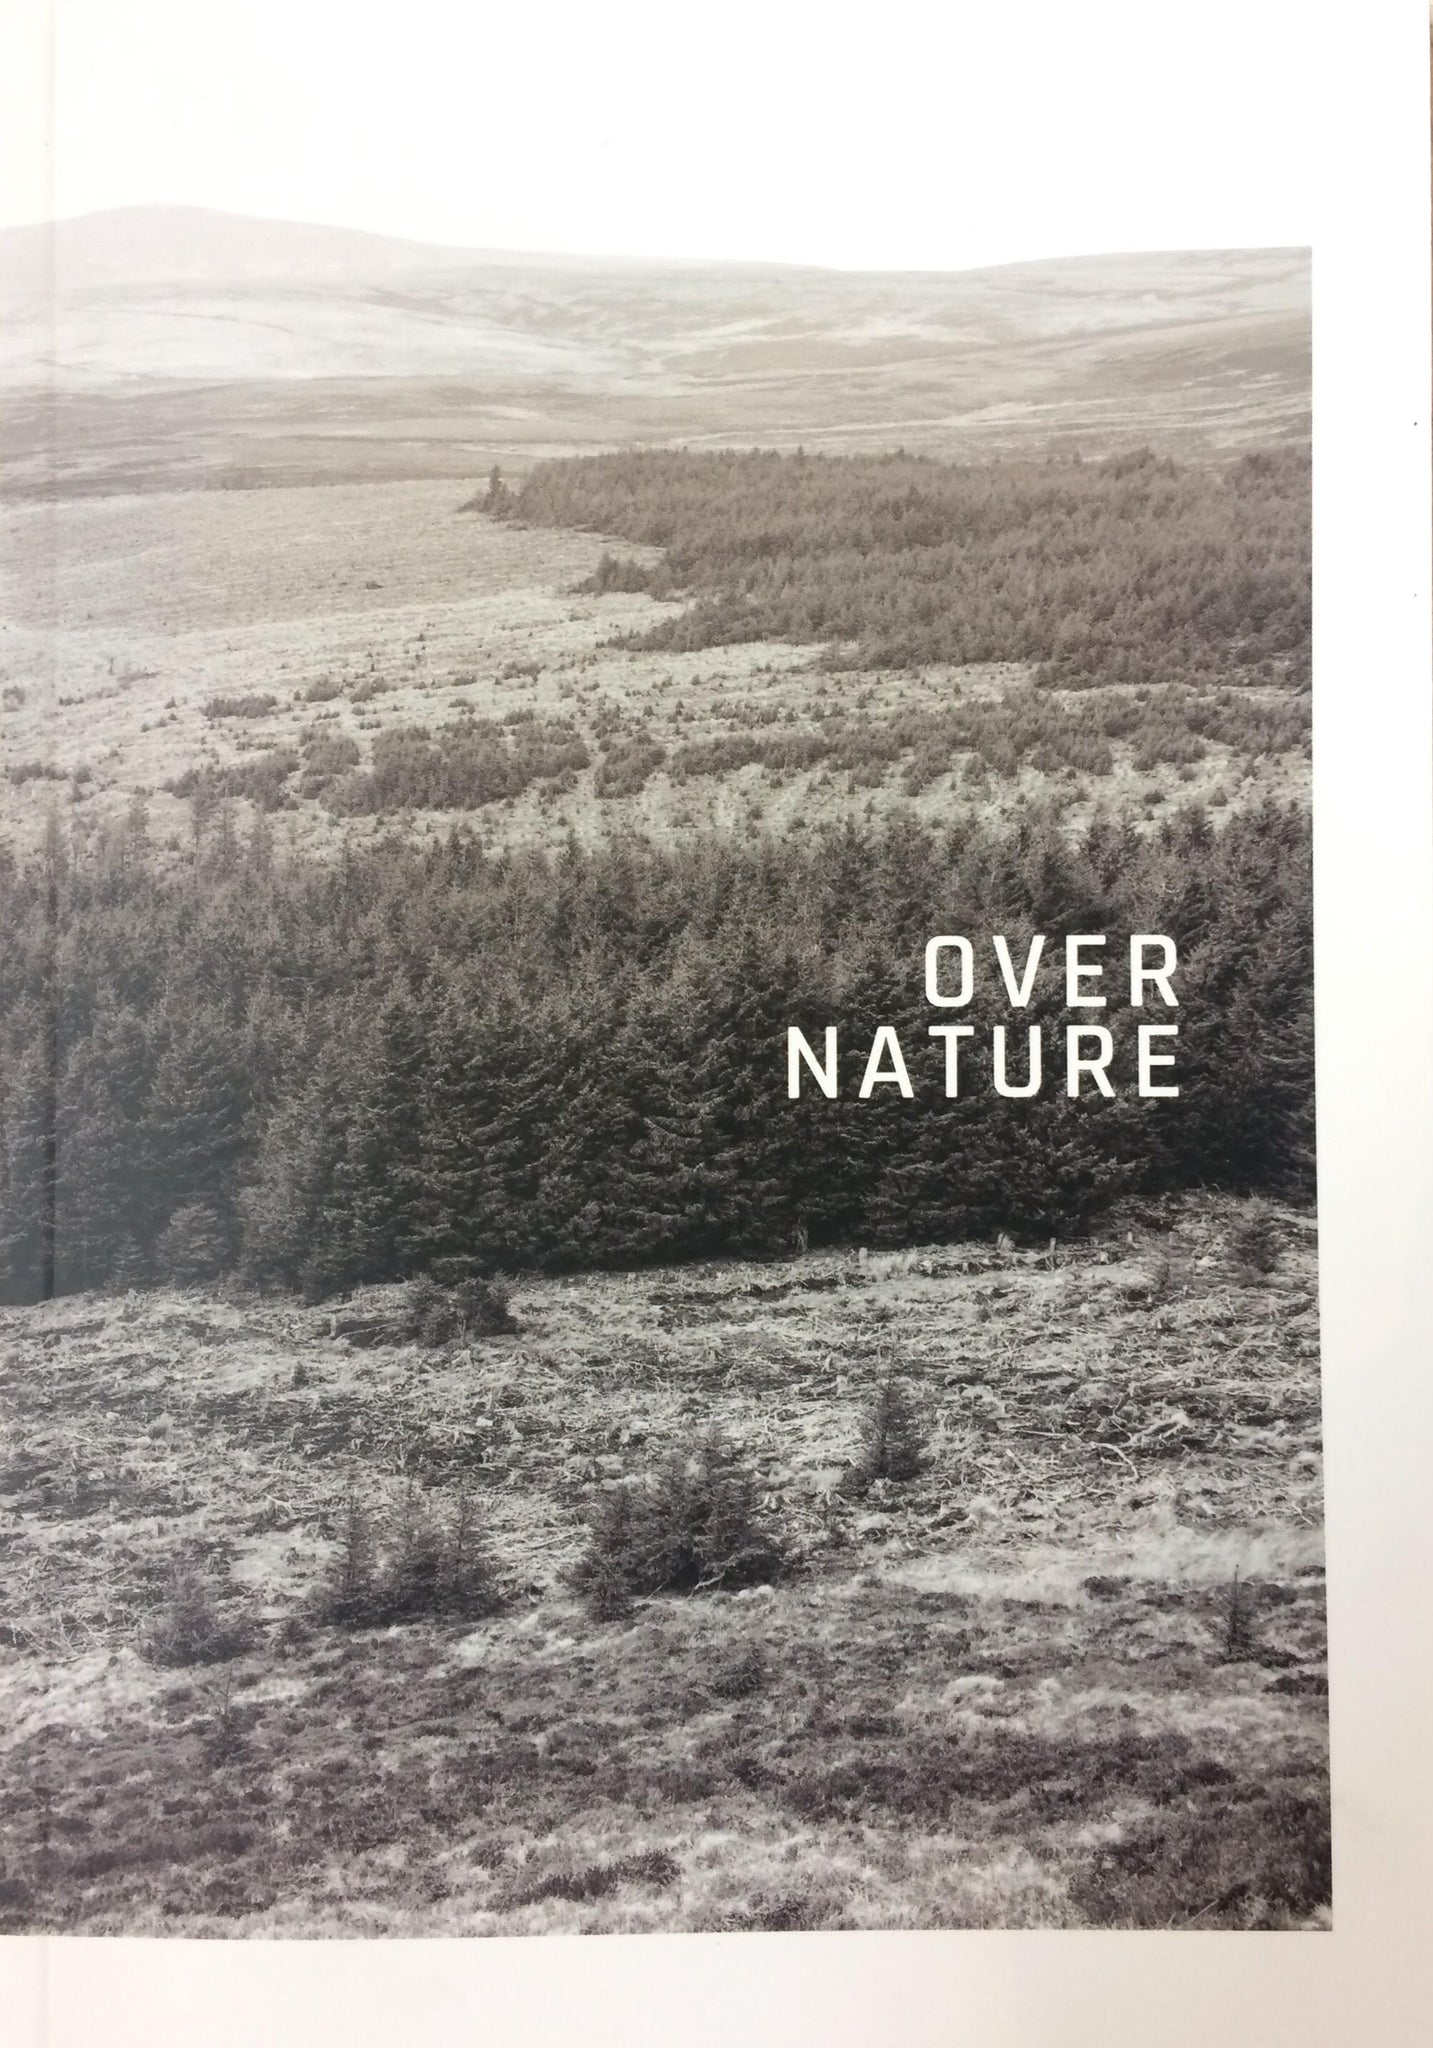 Over Nature - The Library Project